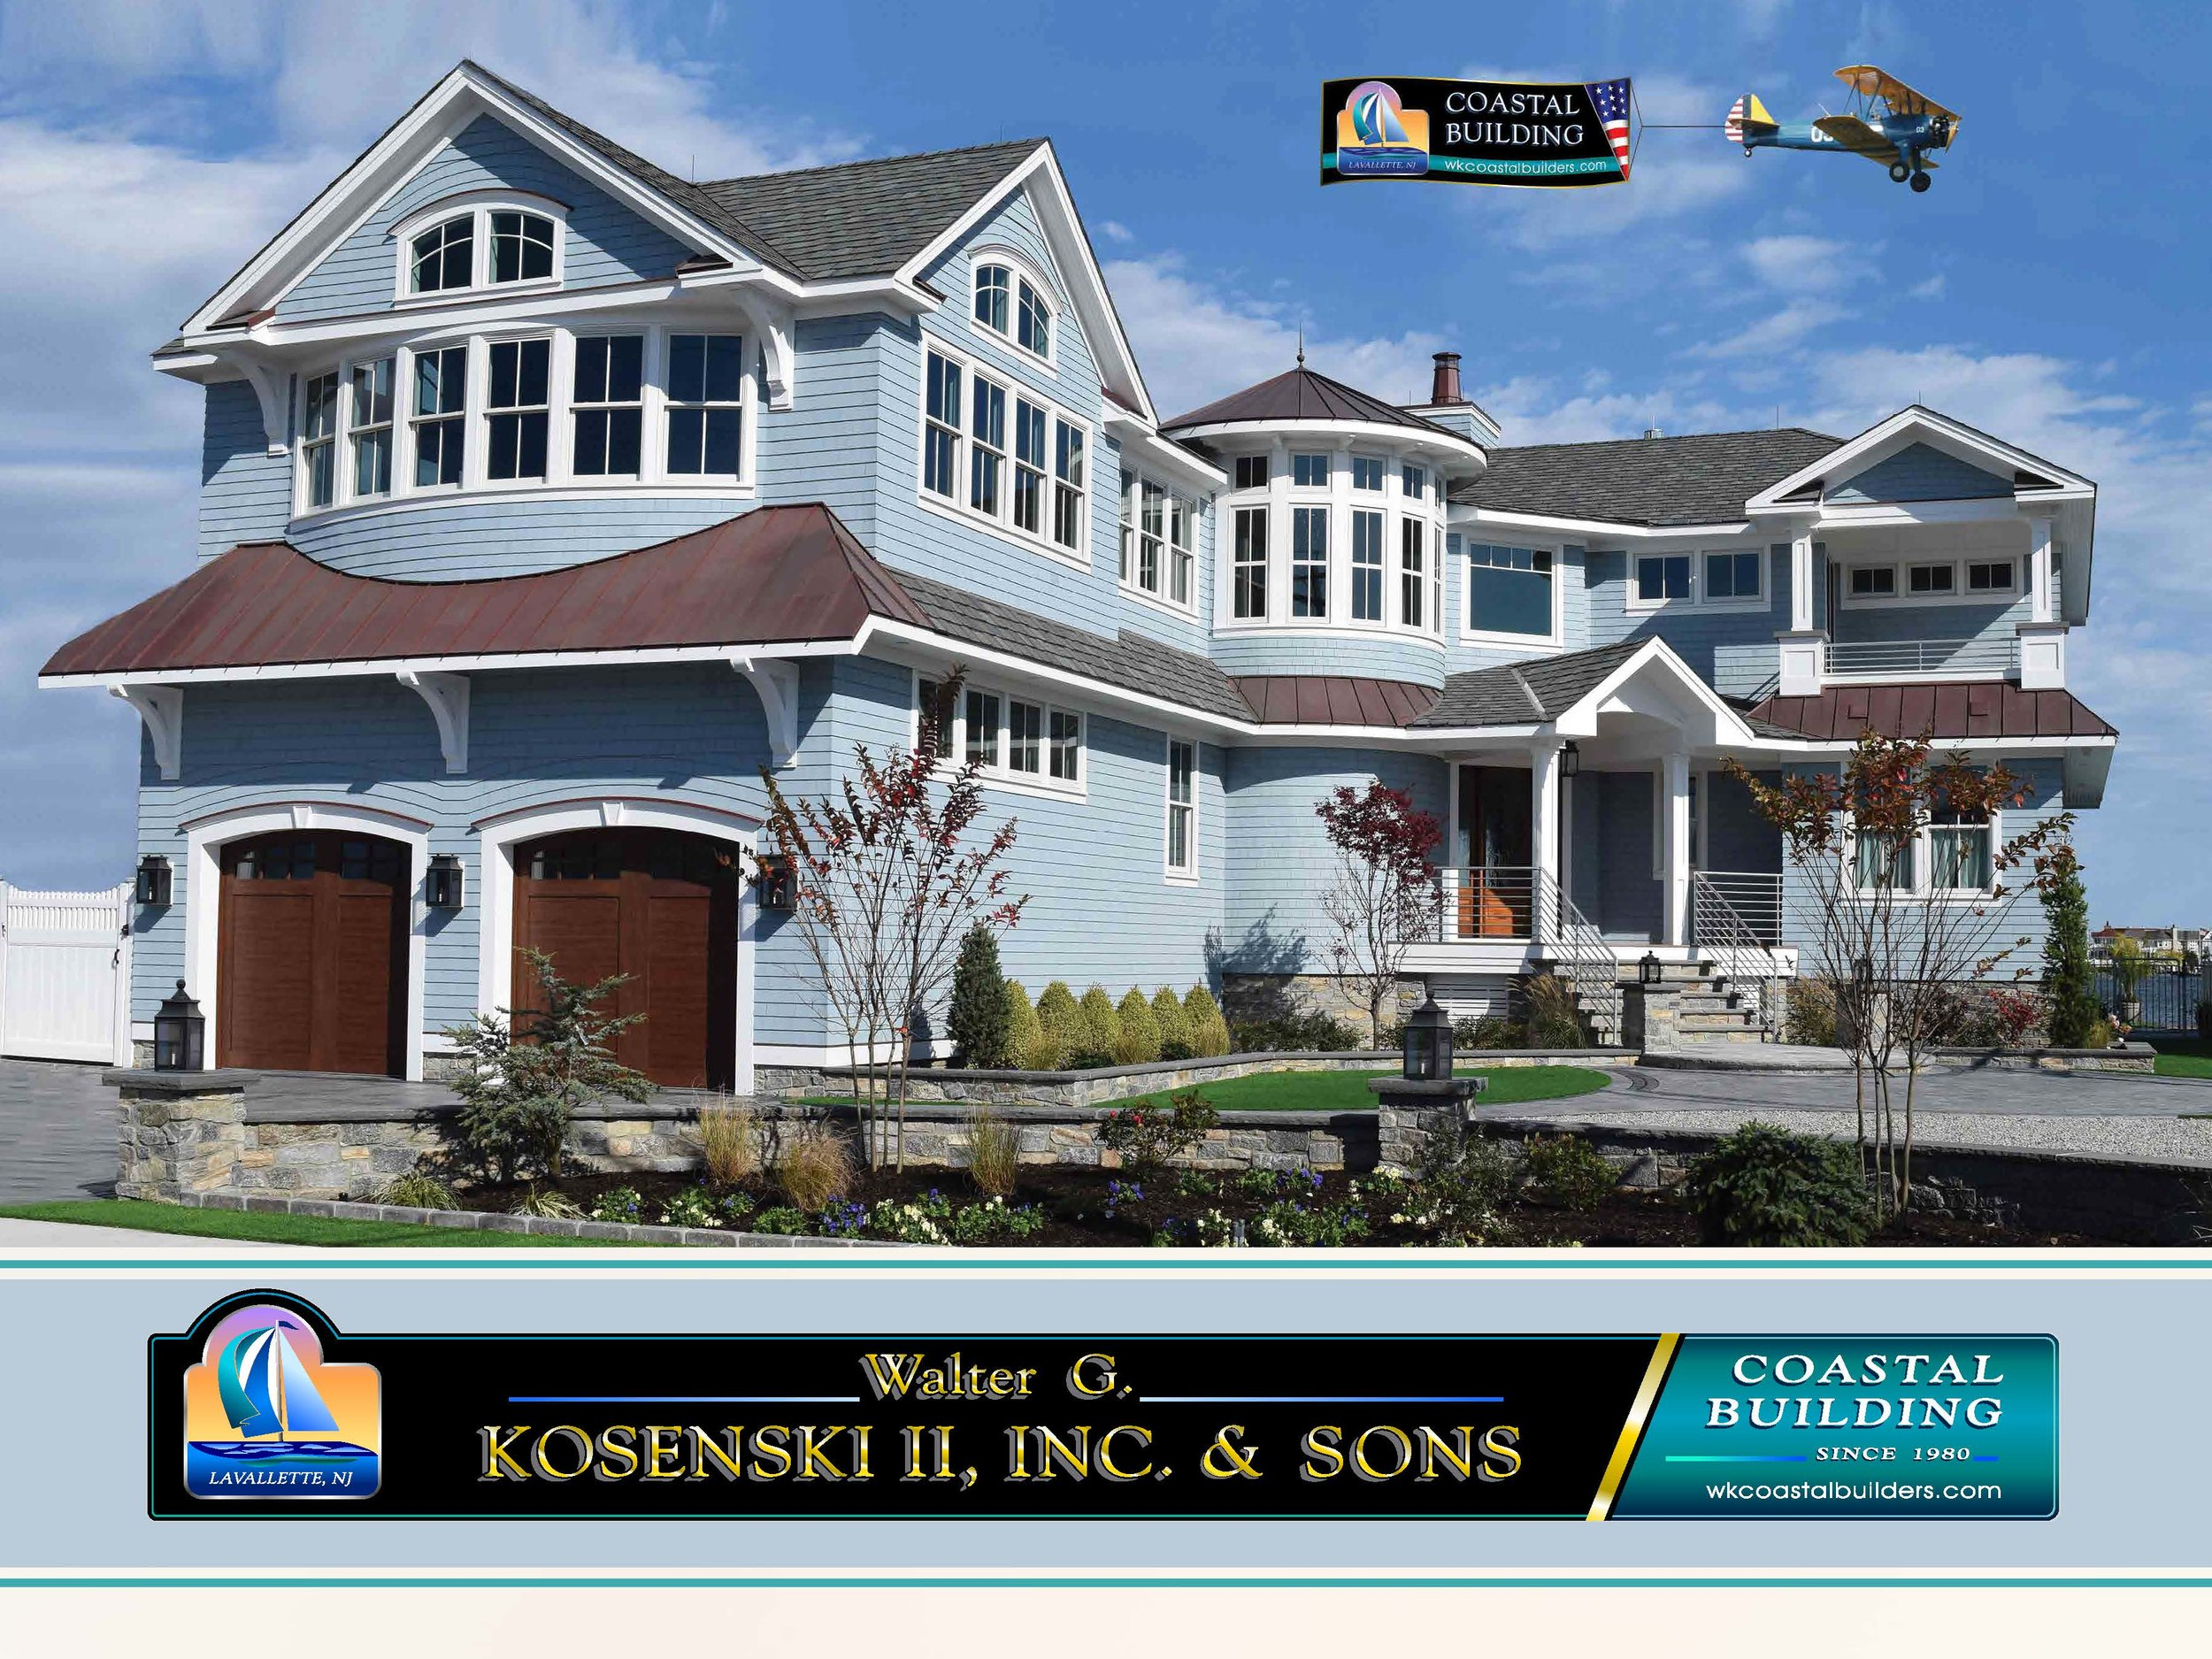 WalterG.KosenskiCoastalBuilders_MARKETING_Page_01.jpg